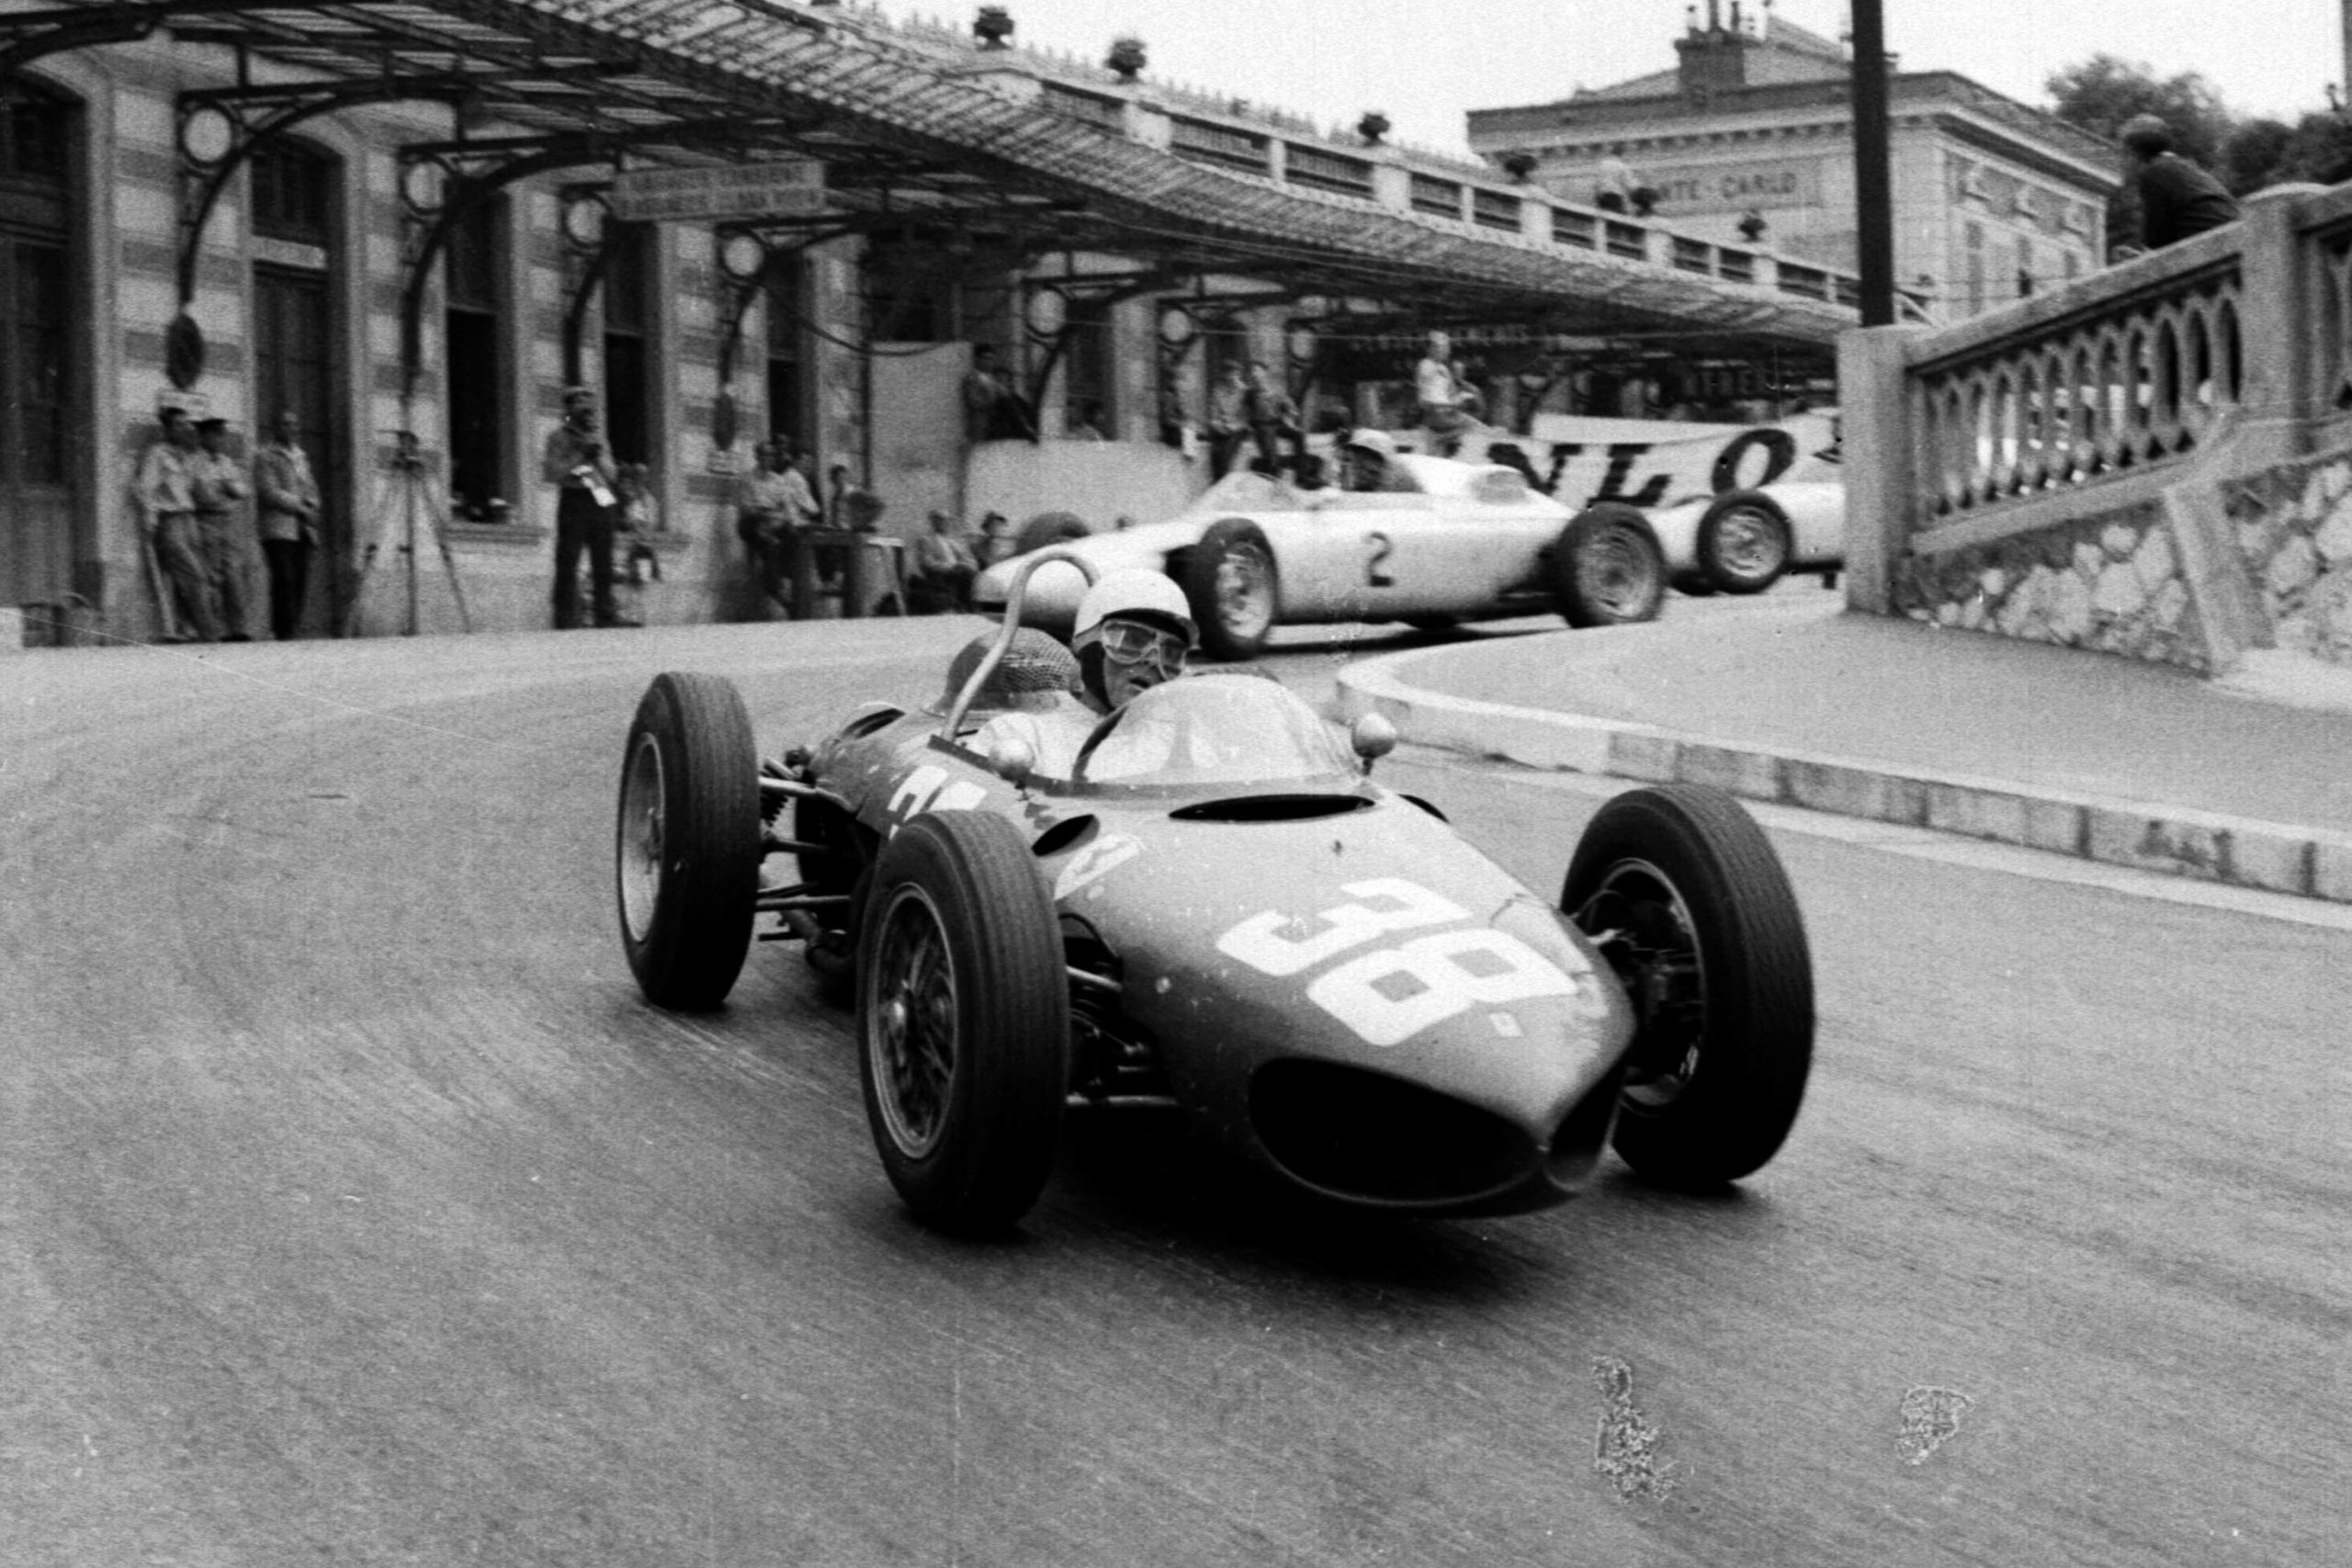 Phil Hill in his Ferrari 156 leads Jo Bonnier's Porsche 787 out of Station Hairpin.